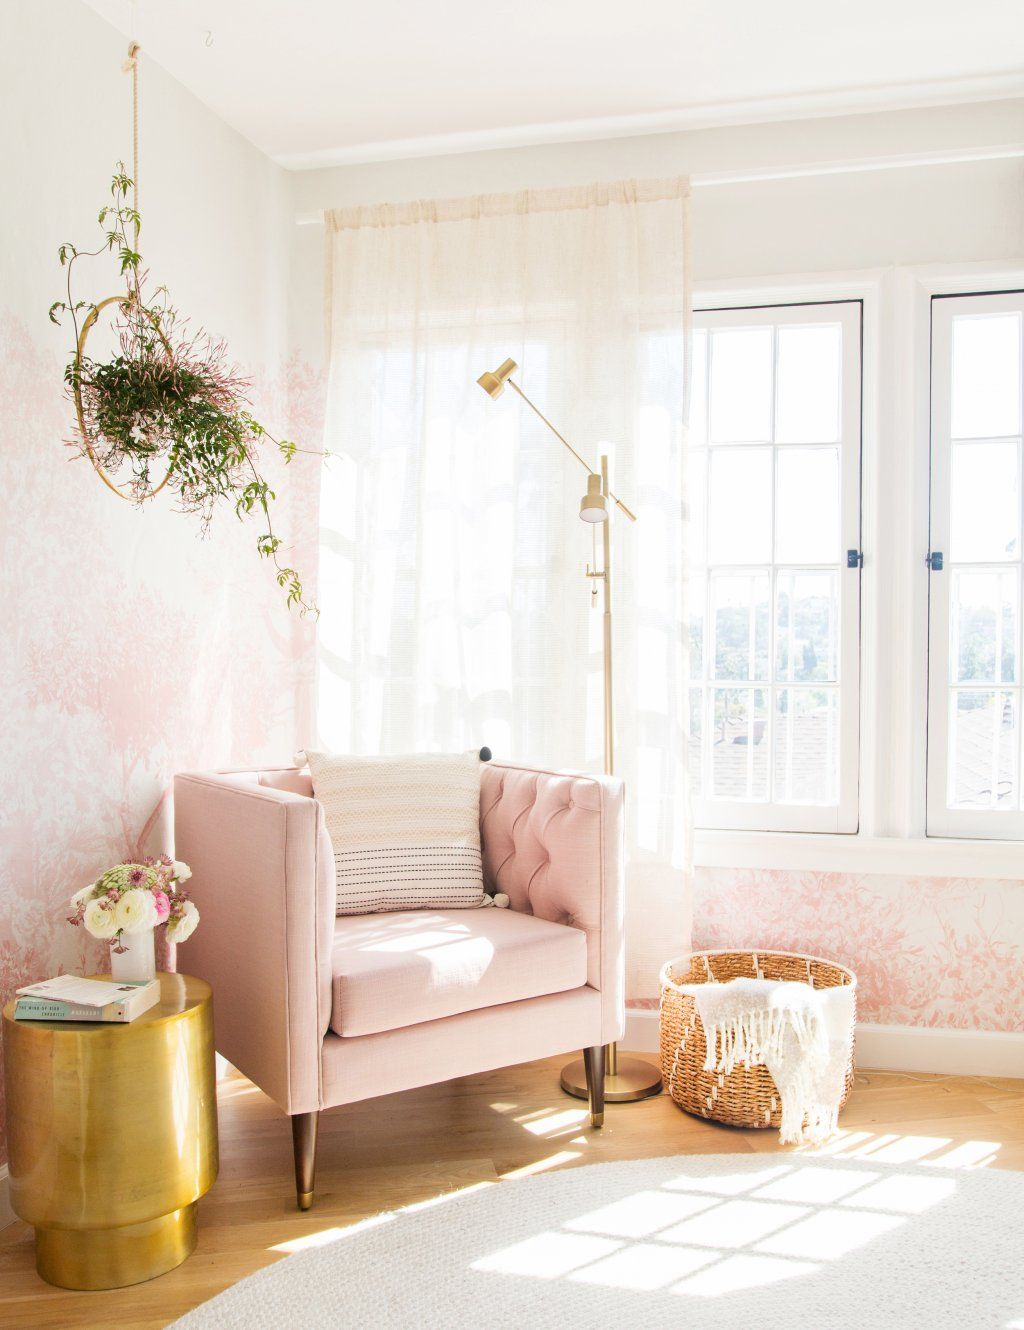 new spring target collection interior inspiration home decor pink marble accent table lux and glam boho reading nook blush gold bedroom living room comfy chairs for dog bath tub